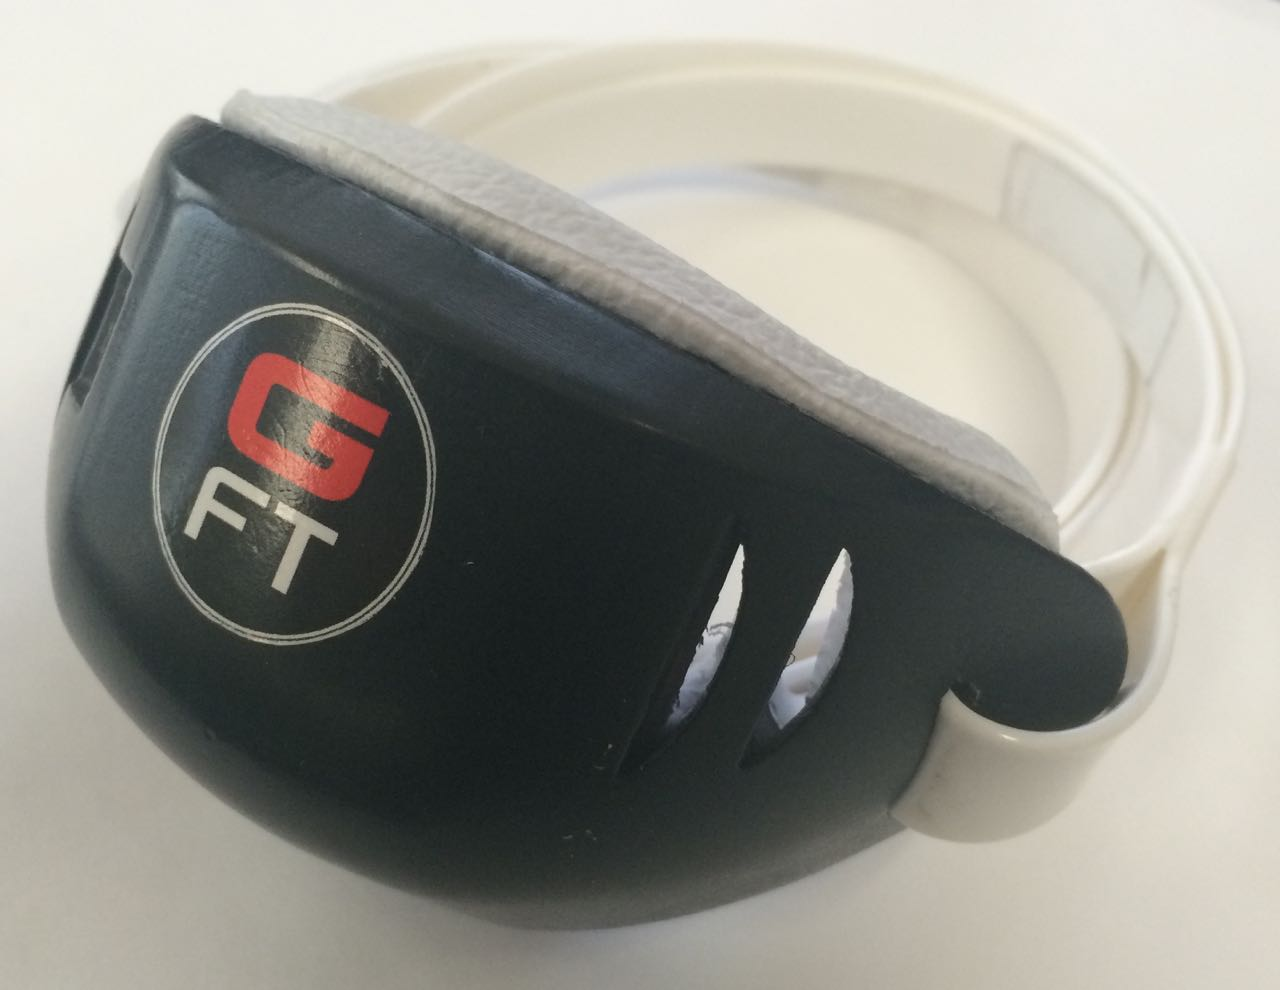 New GFT chin guard now available